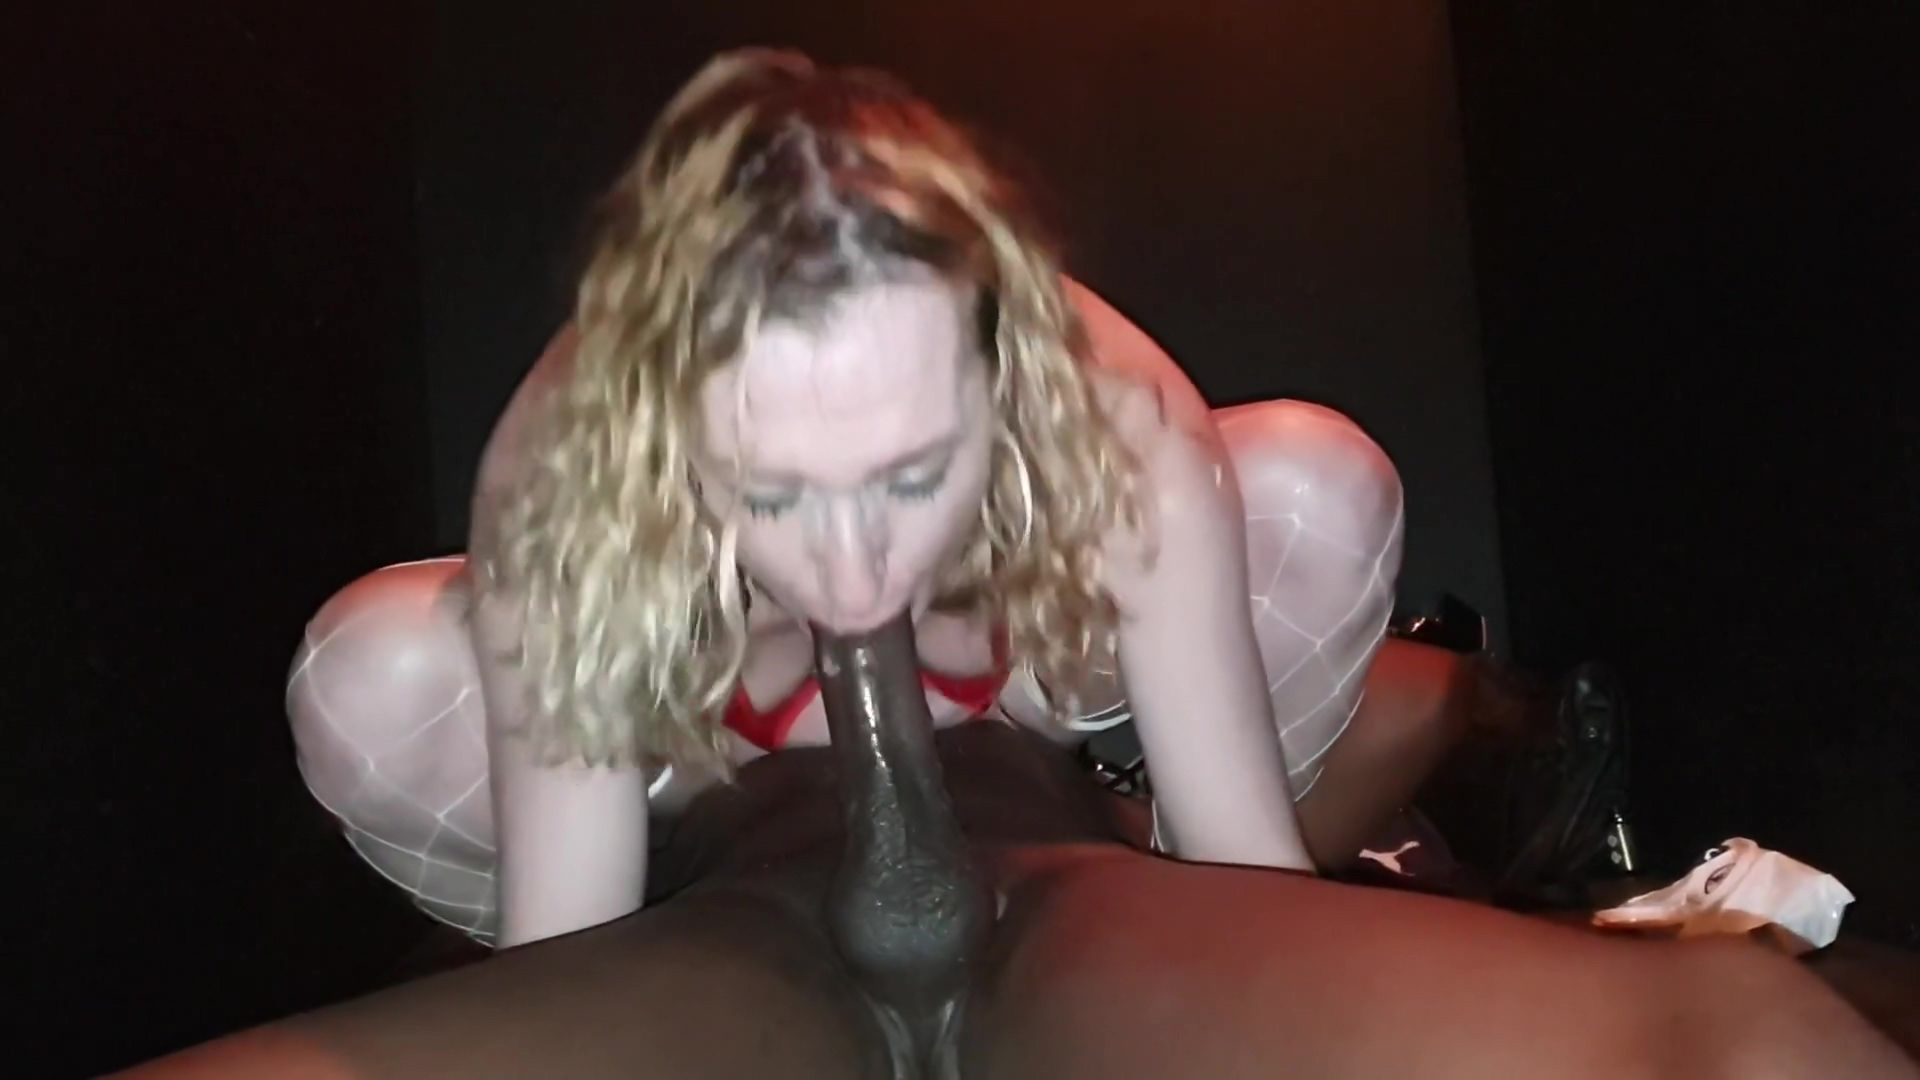 10 Inch Bbc Interracial Fuck For Sexy White Milf Essex Girl Lisa